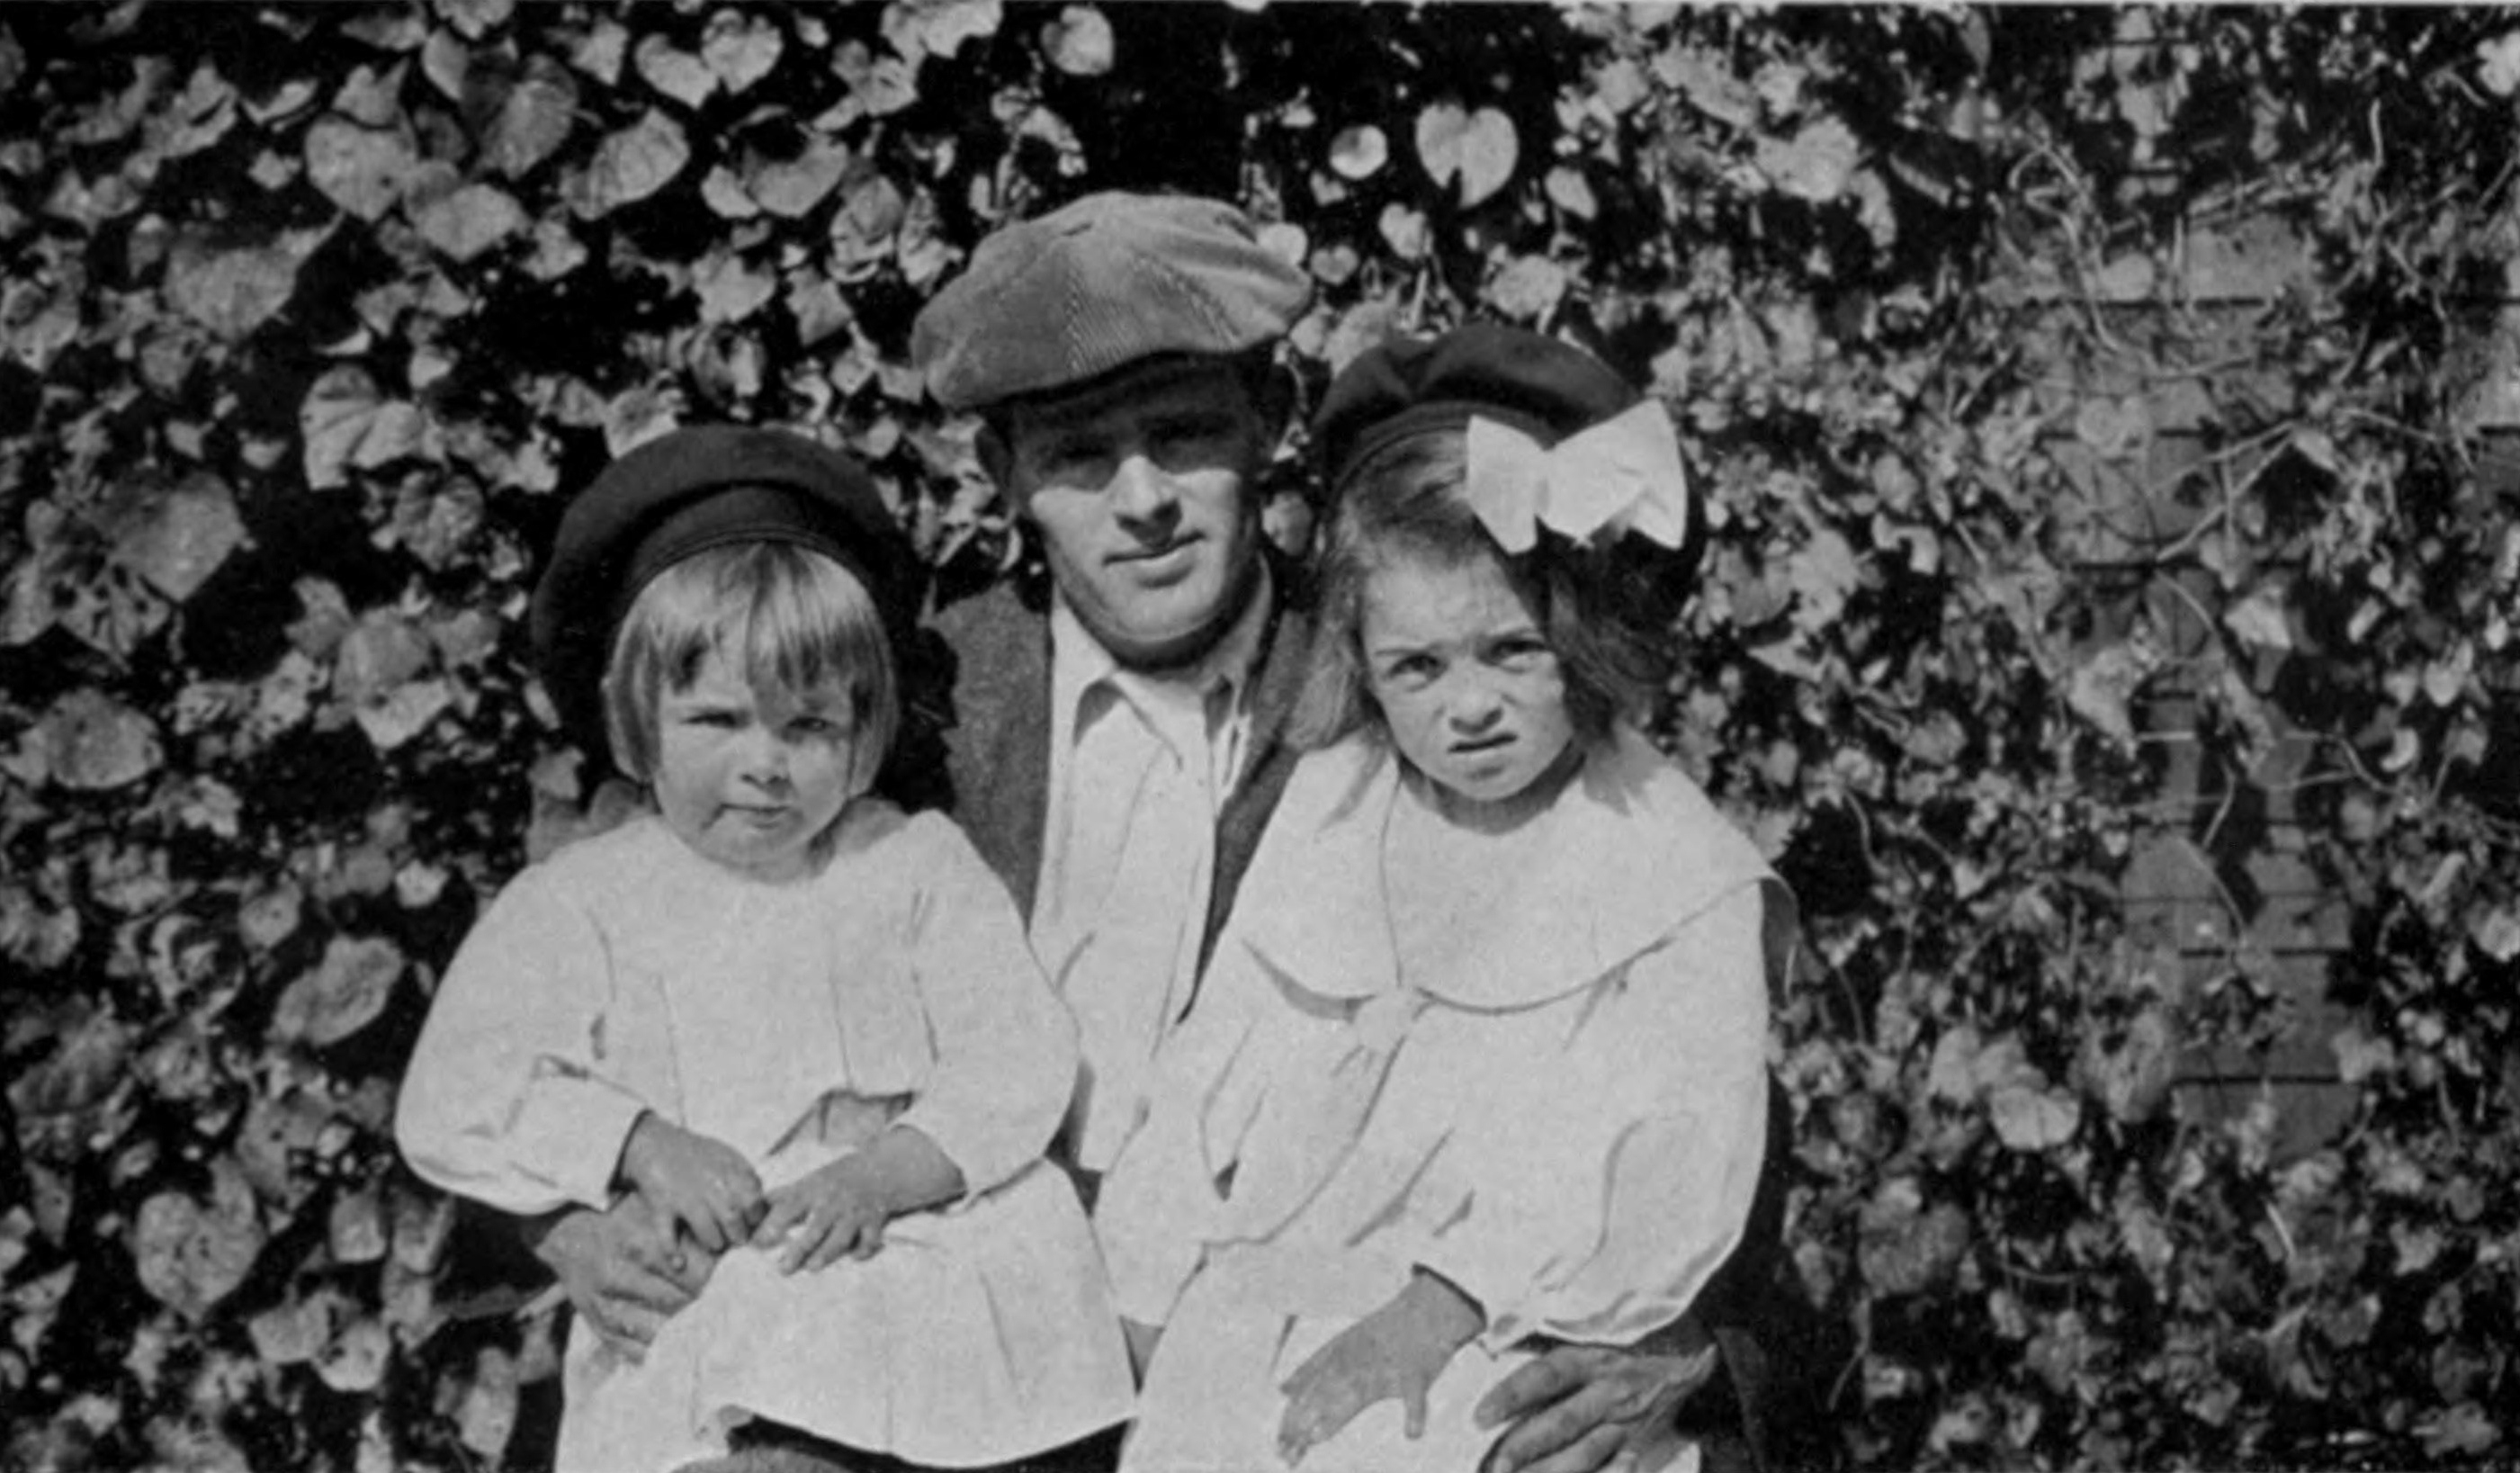 a biography of jack london an american writer Jack london facts: american author and advocate of socialism jack london (1876-1916) wrote popular adventure stories and social tracts based on unusual personal experiences at their best, his works are powerful and moving narratives jack london.